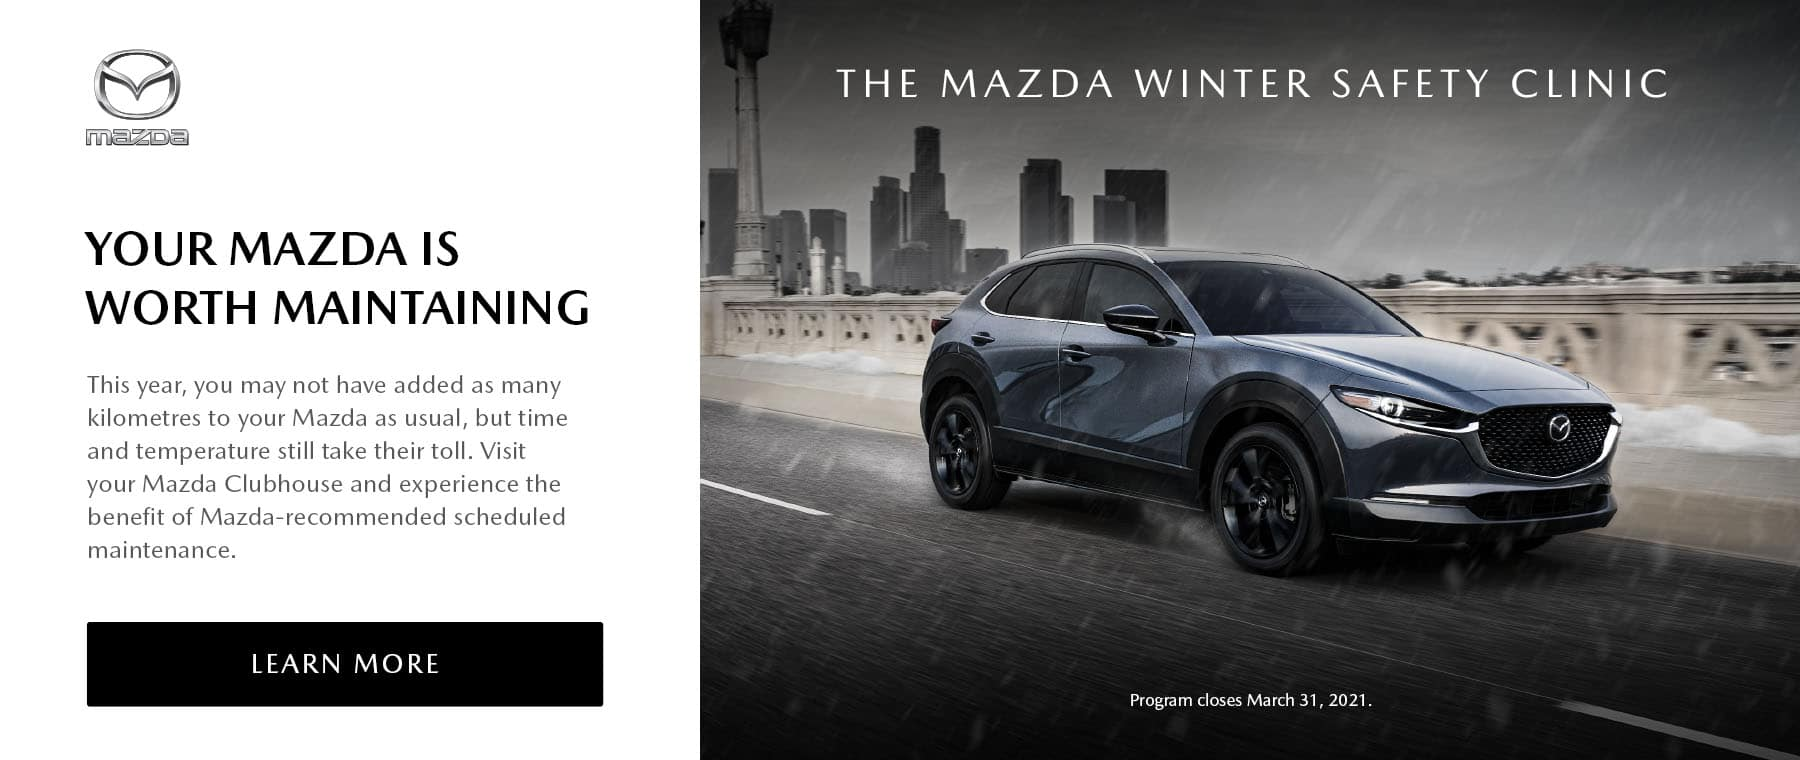 The Mazda Winter Safety Clinic.